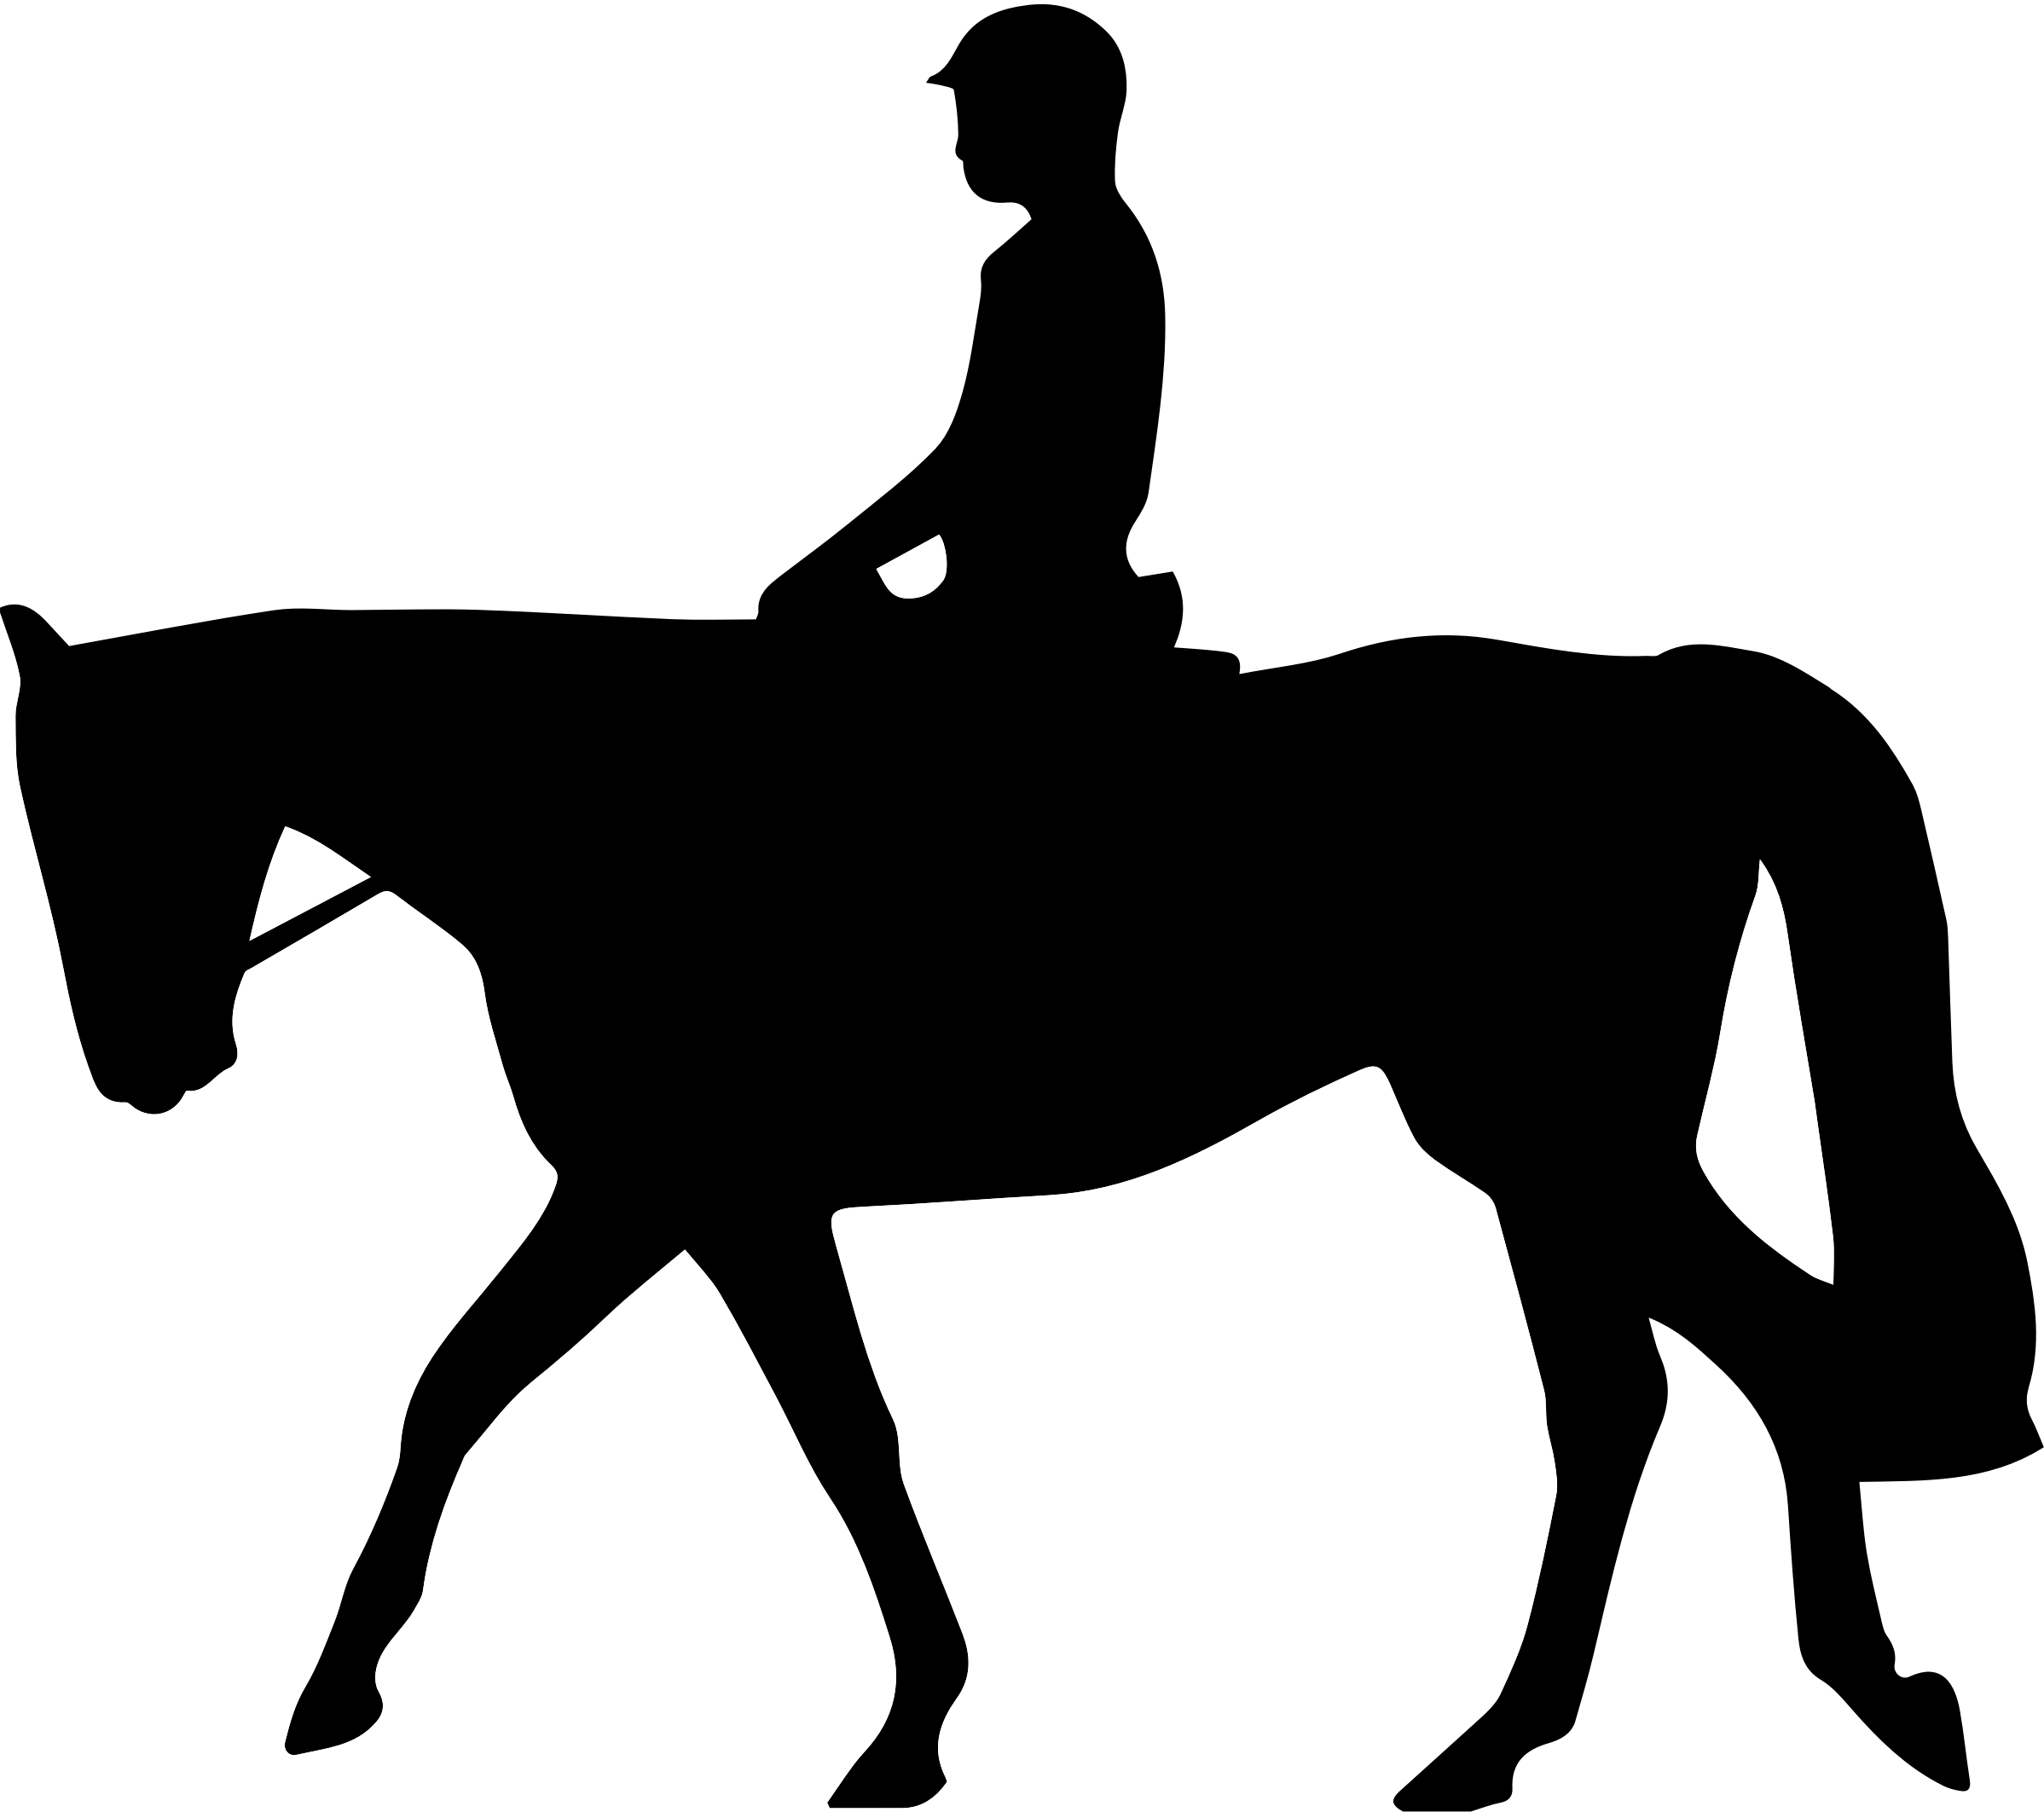 Horse silhouette dressage - photo#14